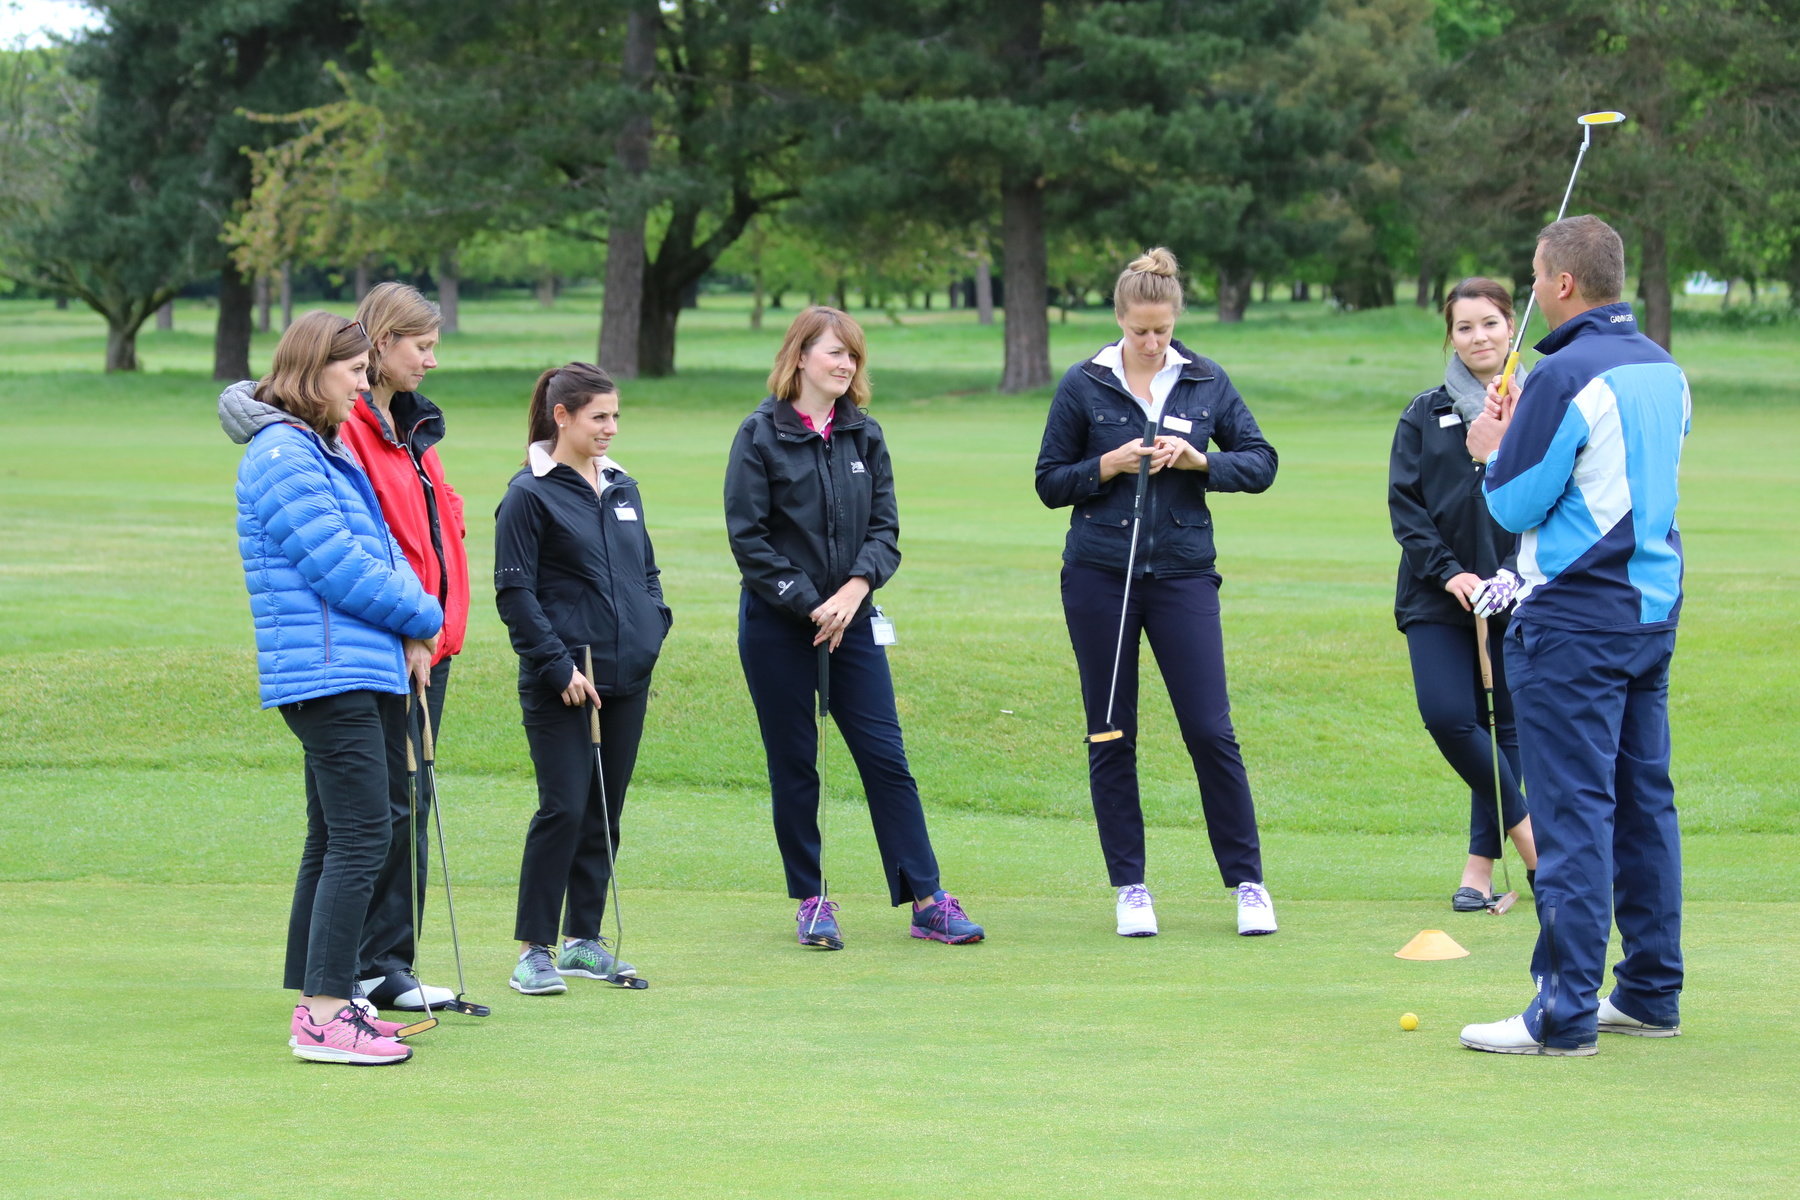 Business Women taking up golf at Royal Mid-Surrey